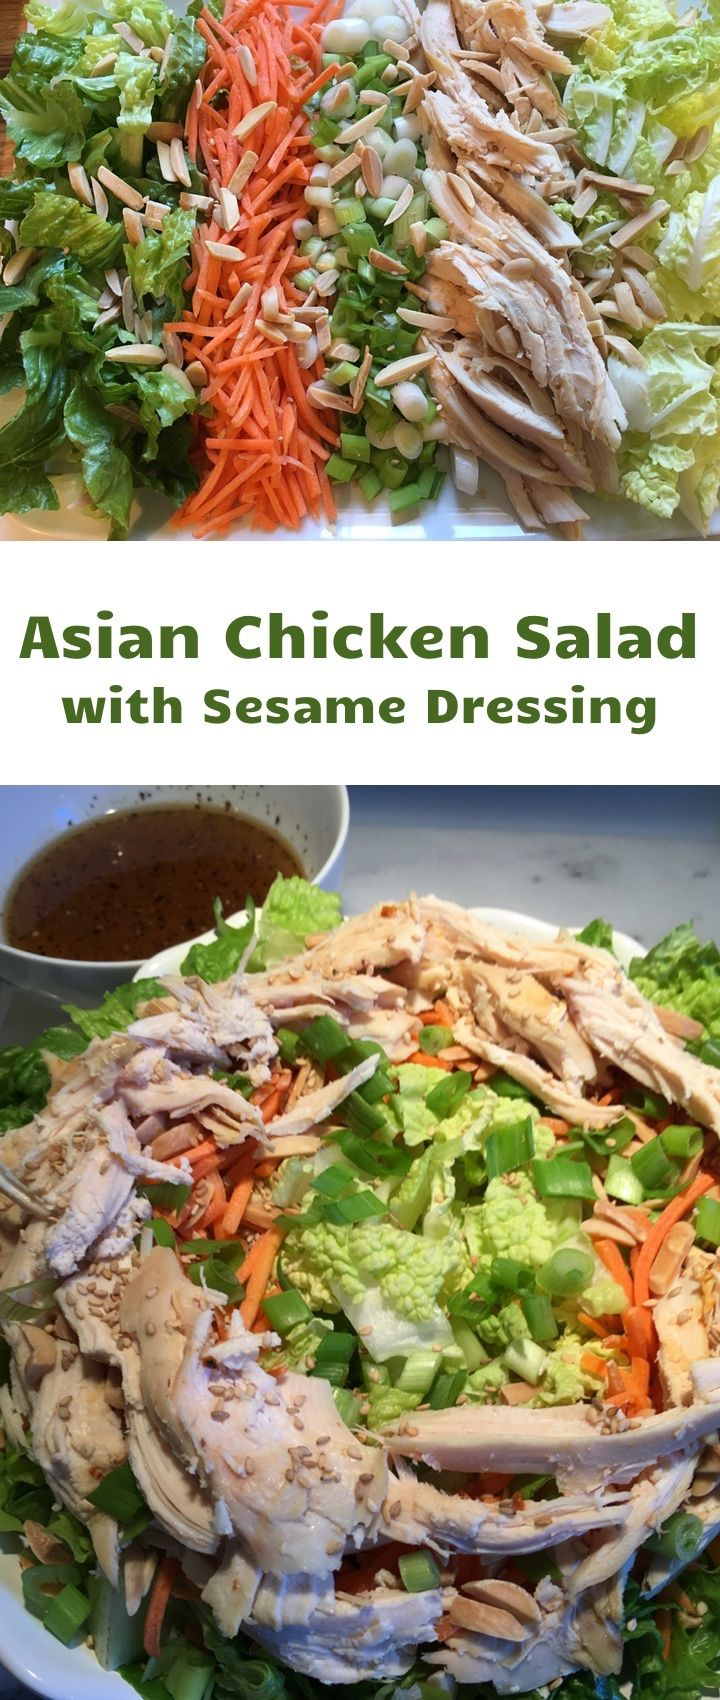 Asian Chicken Salad with Sesame Dressing - @JustSavorIt